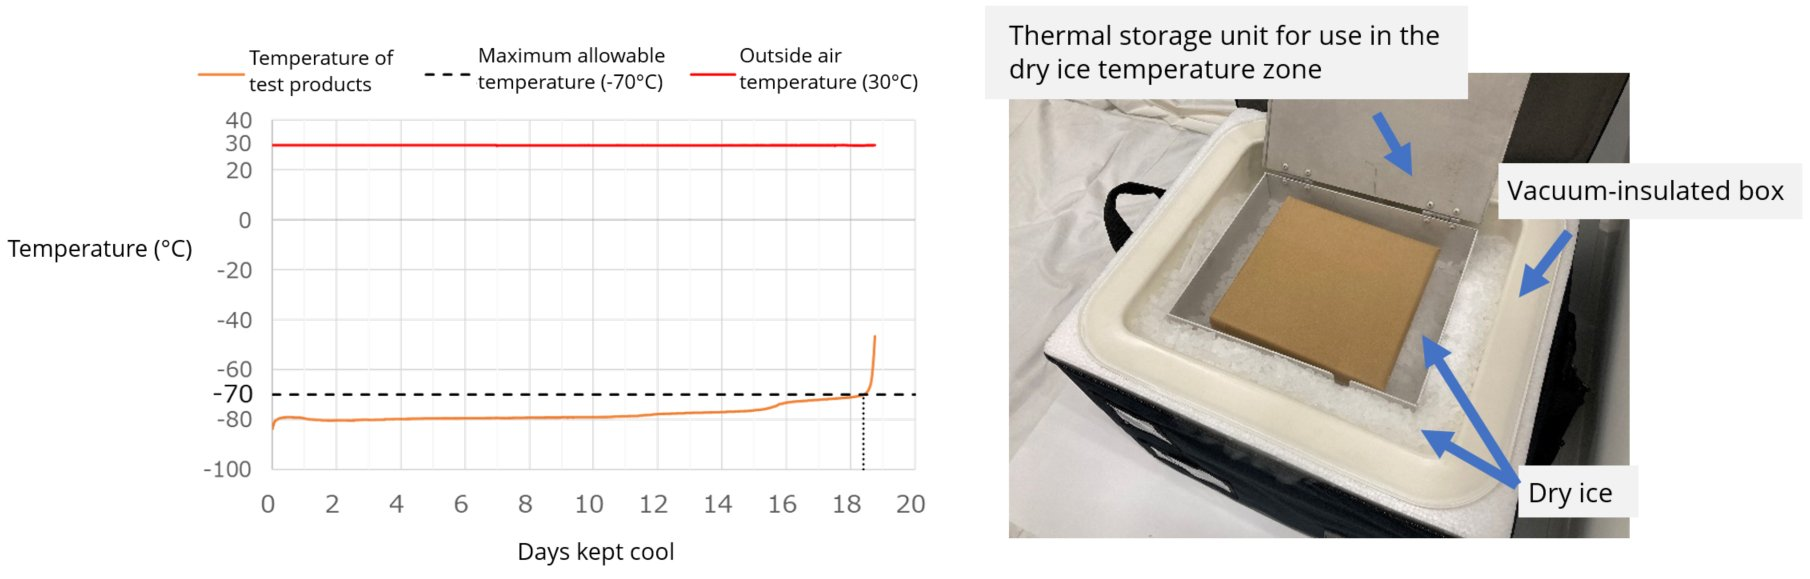 Coolness retention performance that caters to frozen transport below -70ºC